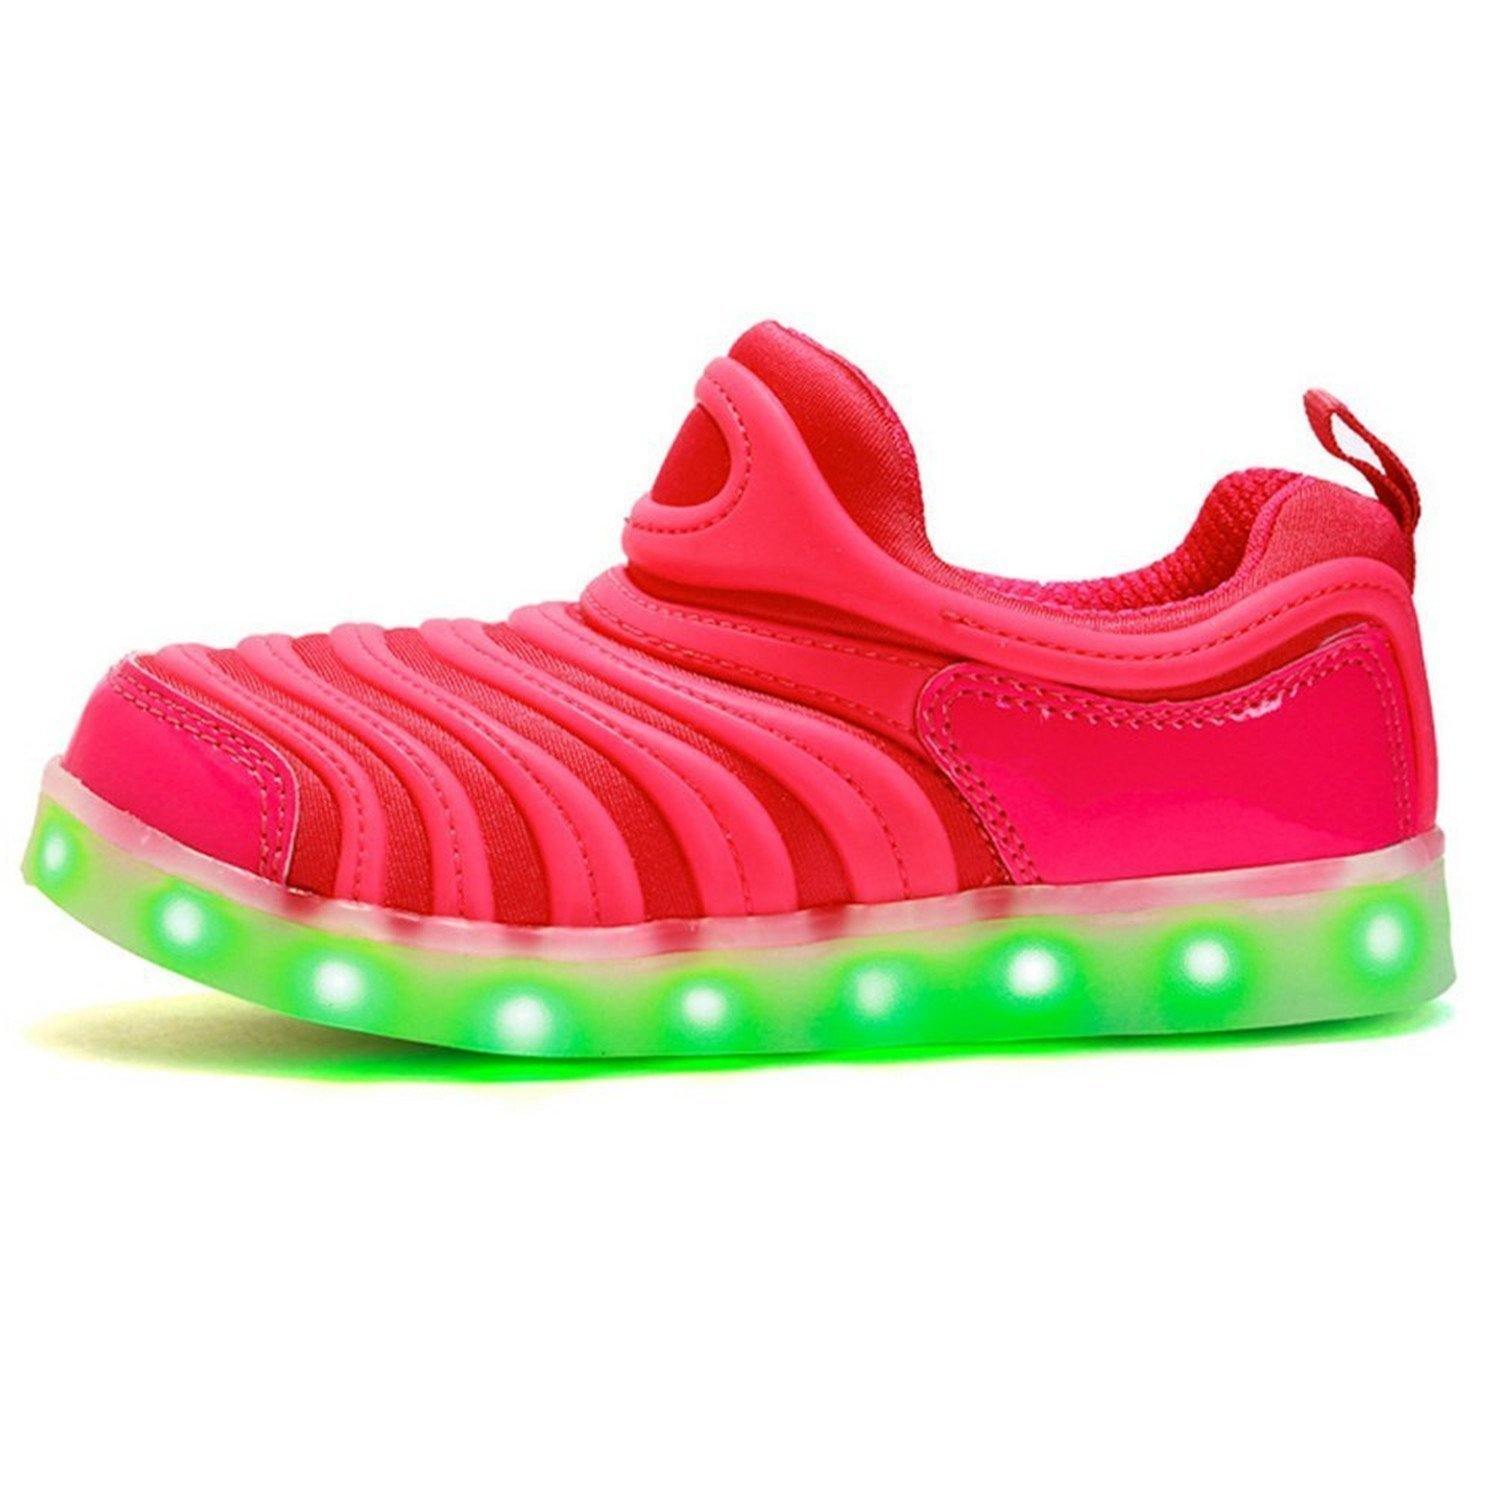 24XOmx55S99 Kids LED Light Up Shoes Flashing Sneakers for Girls Boys Halloween